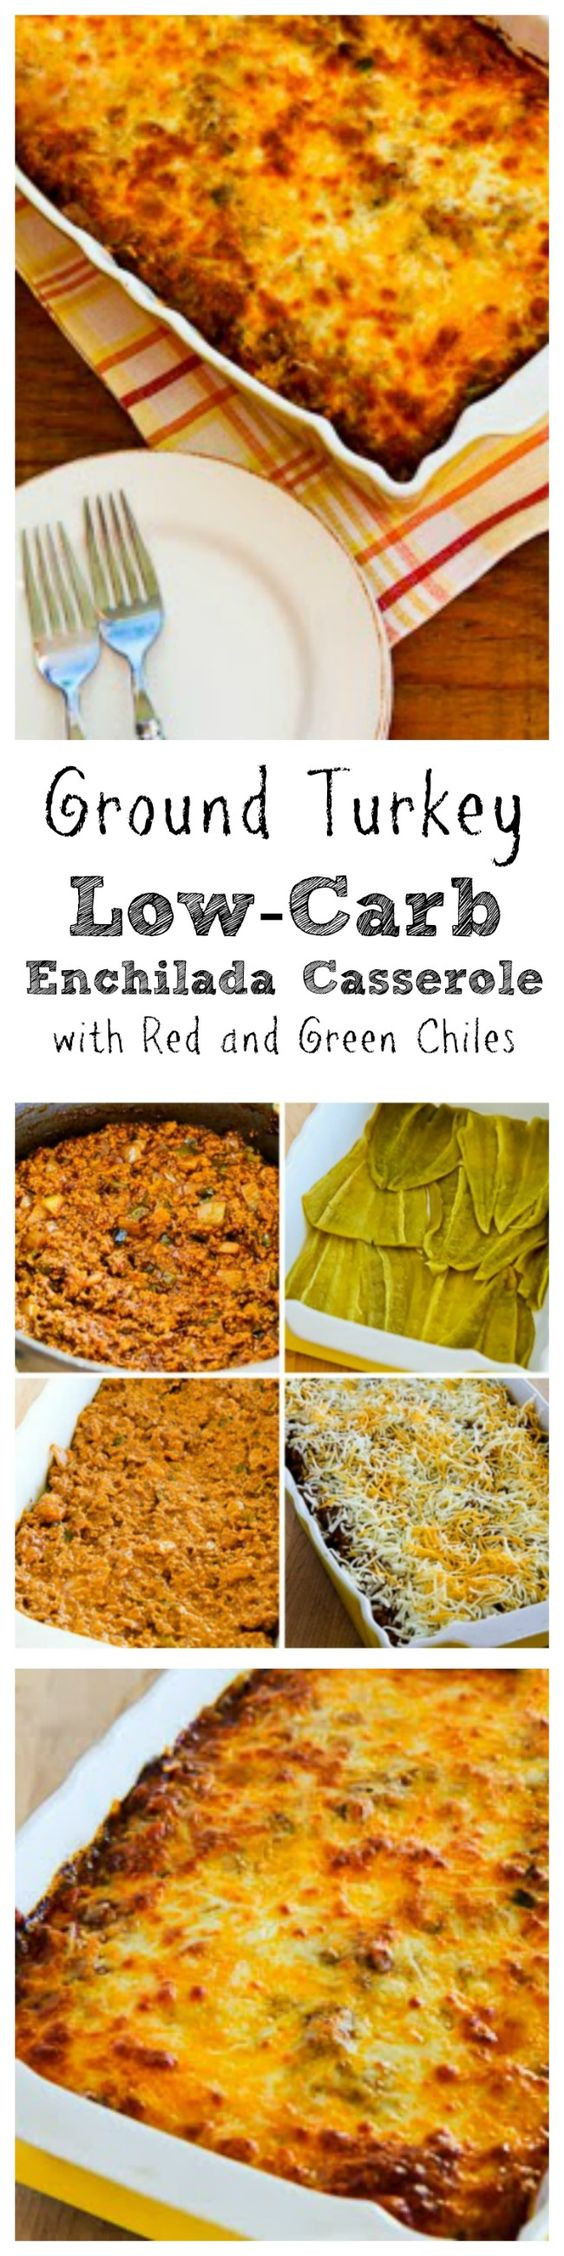 Ground Turkey Casserole Low Carb  Pinterest • The world's catalog of ideas